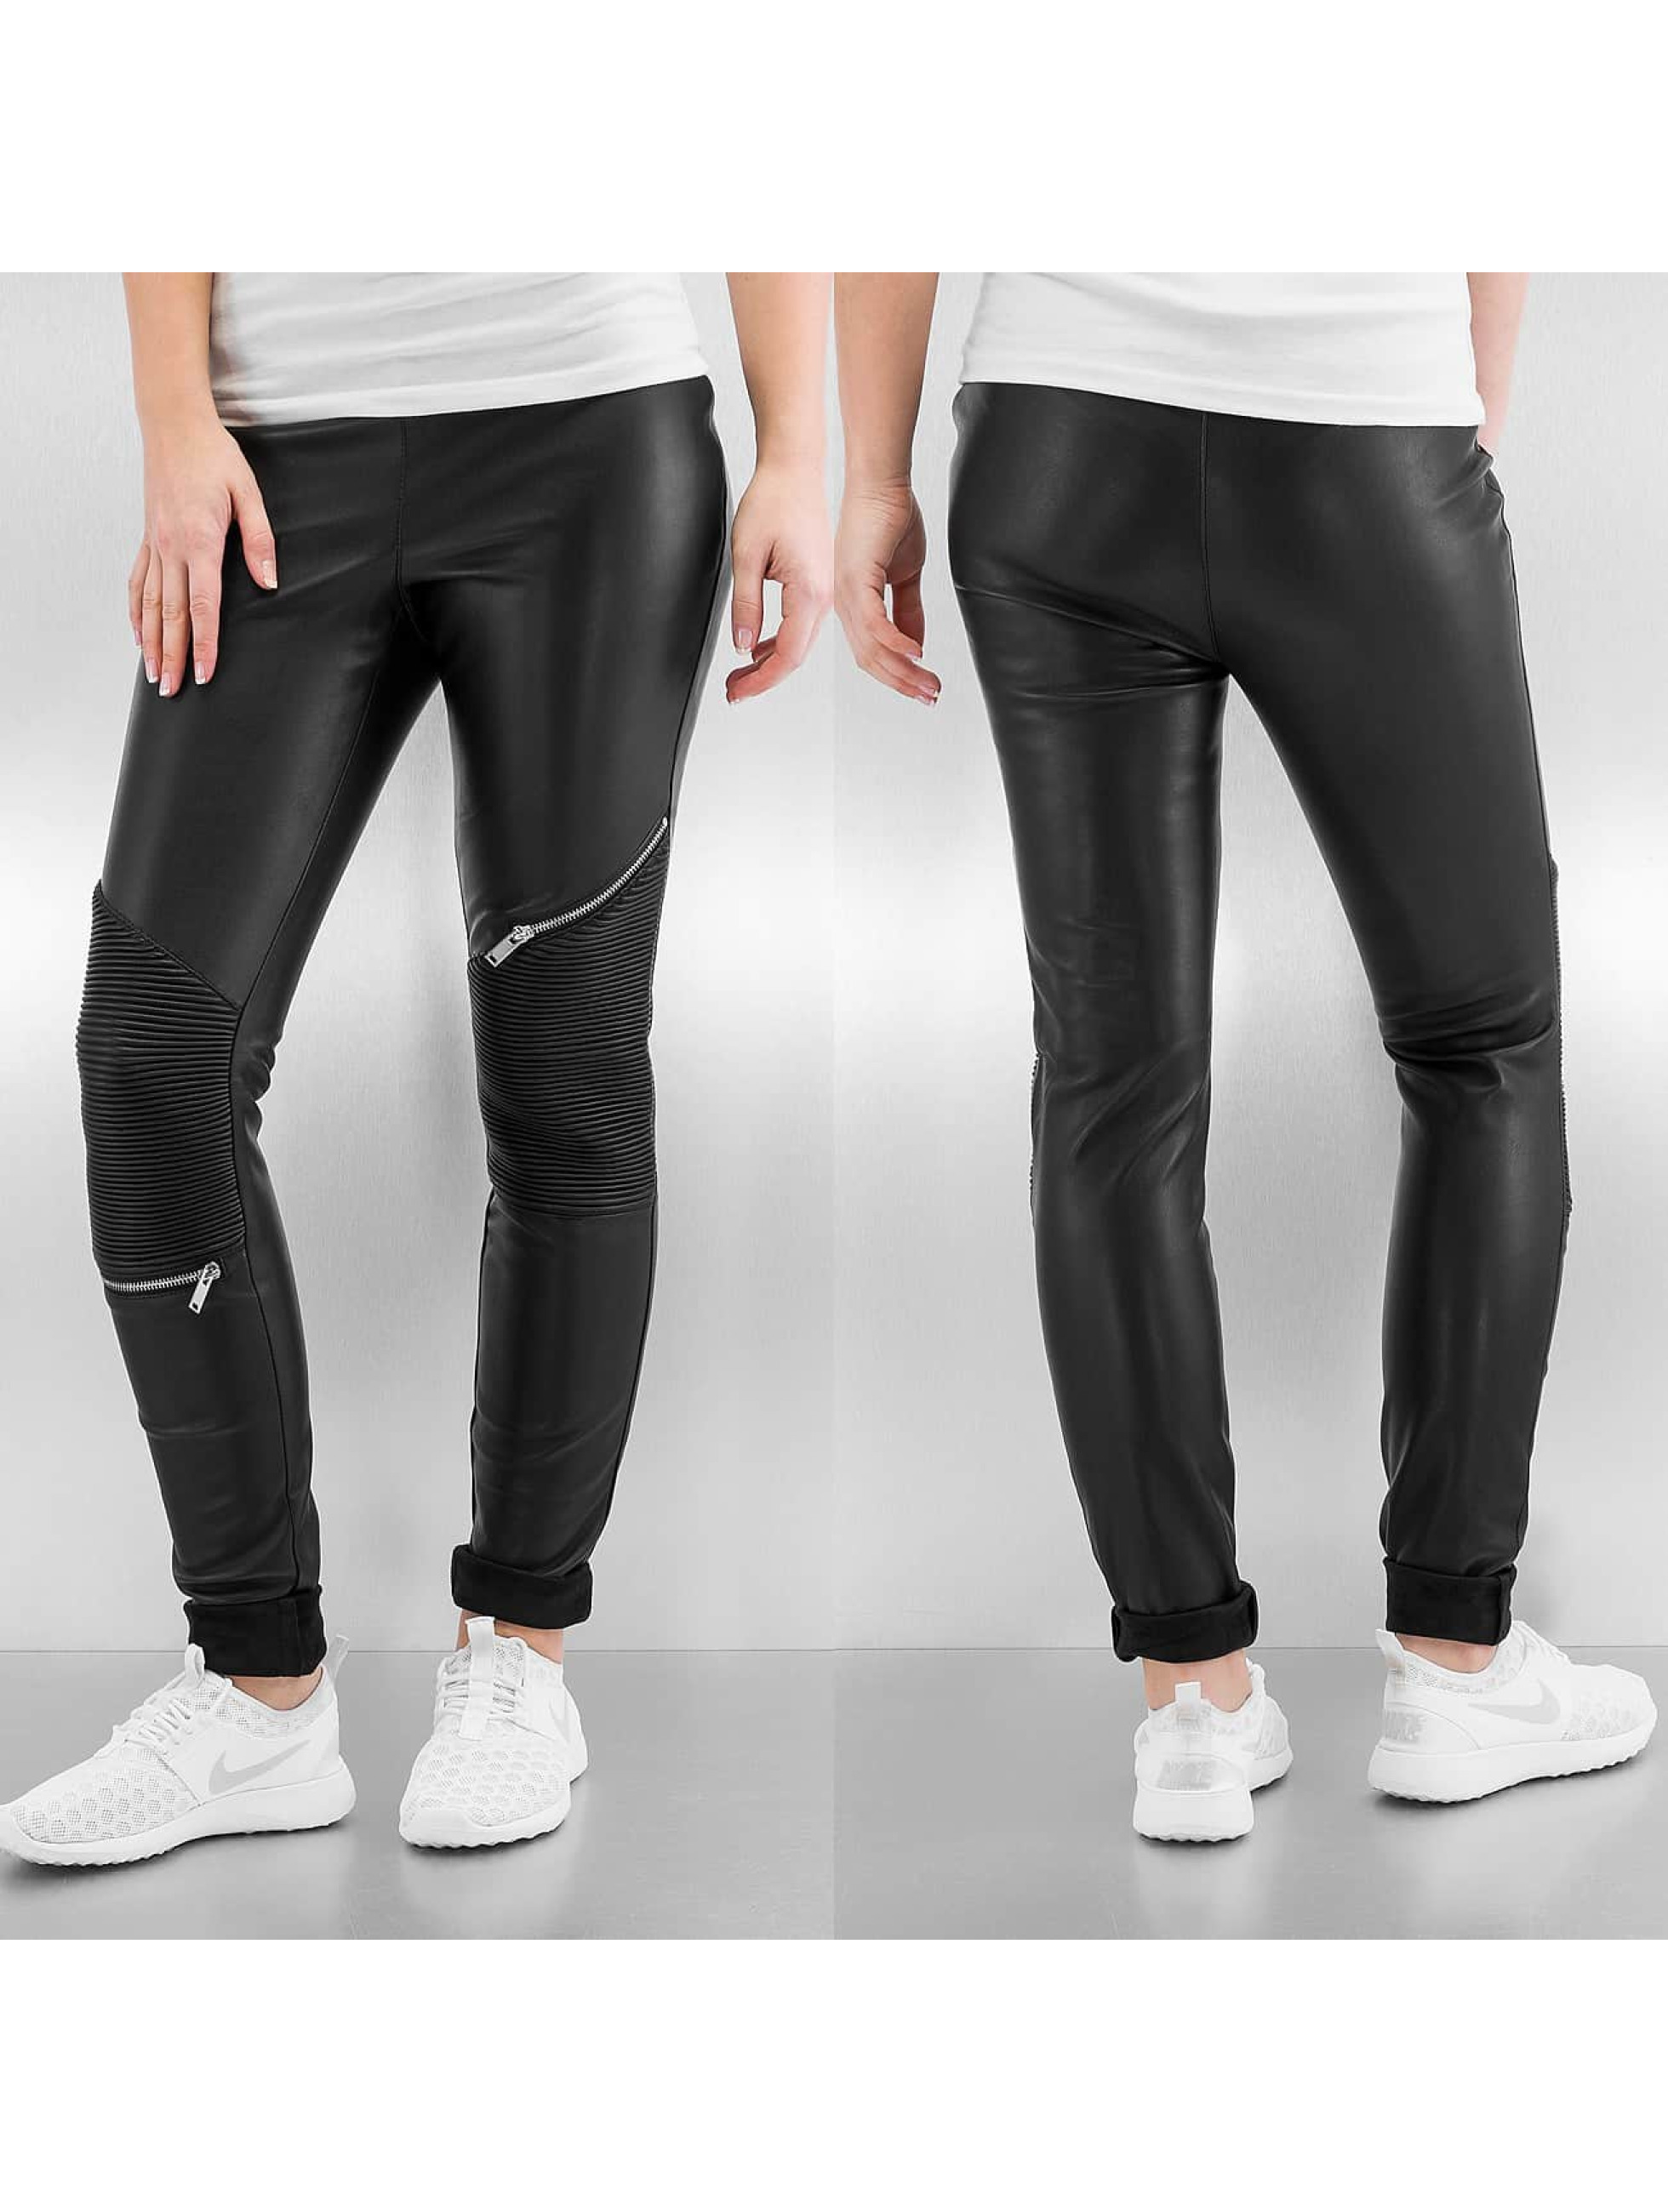 Legging vmAmber in schwarz